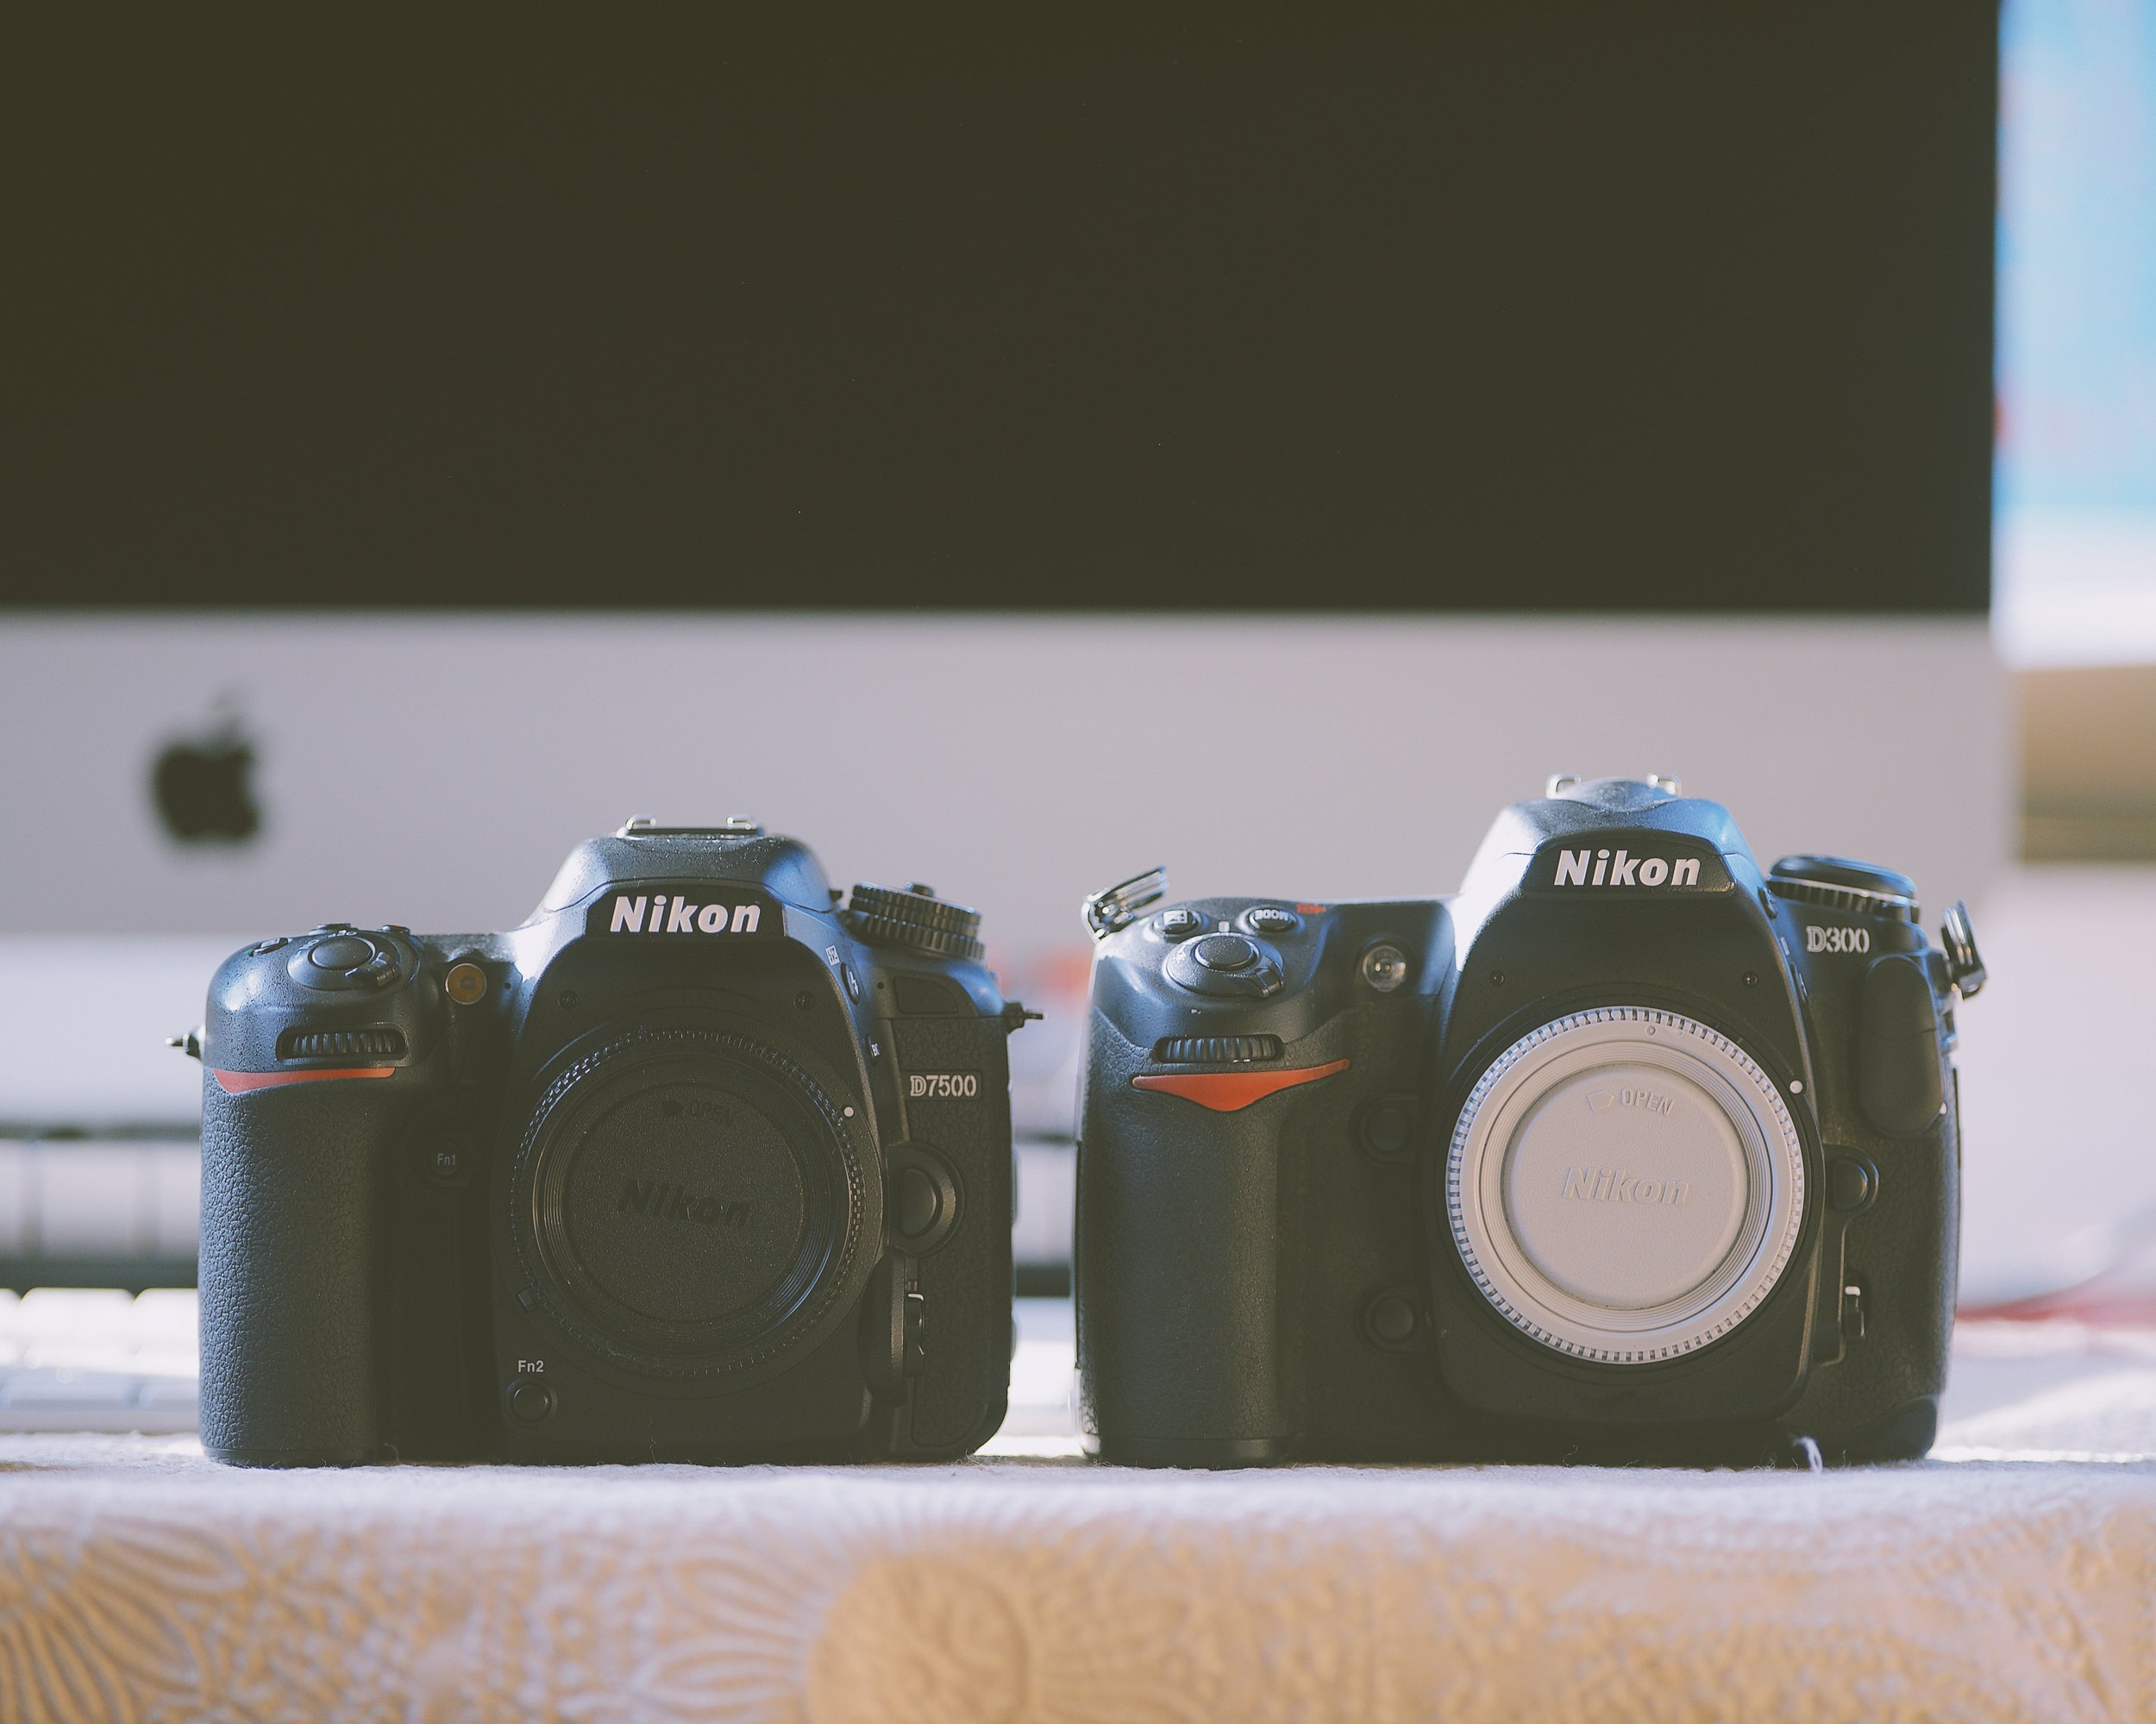 D7500 on the left, D7300 on the right.